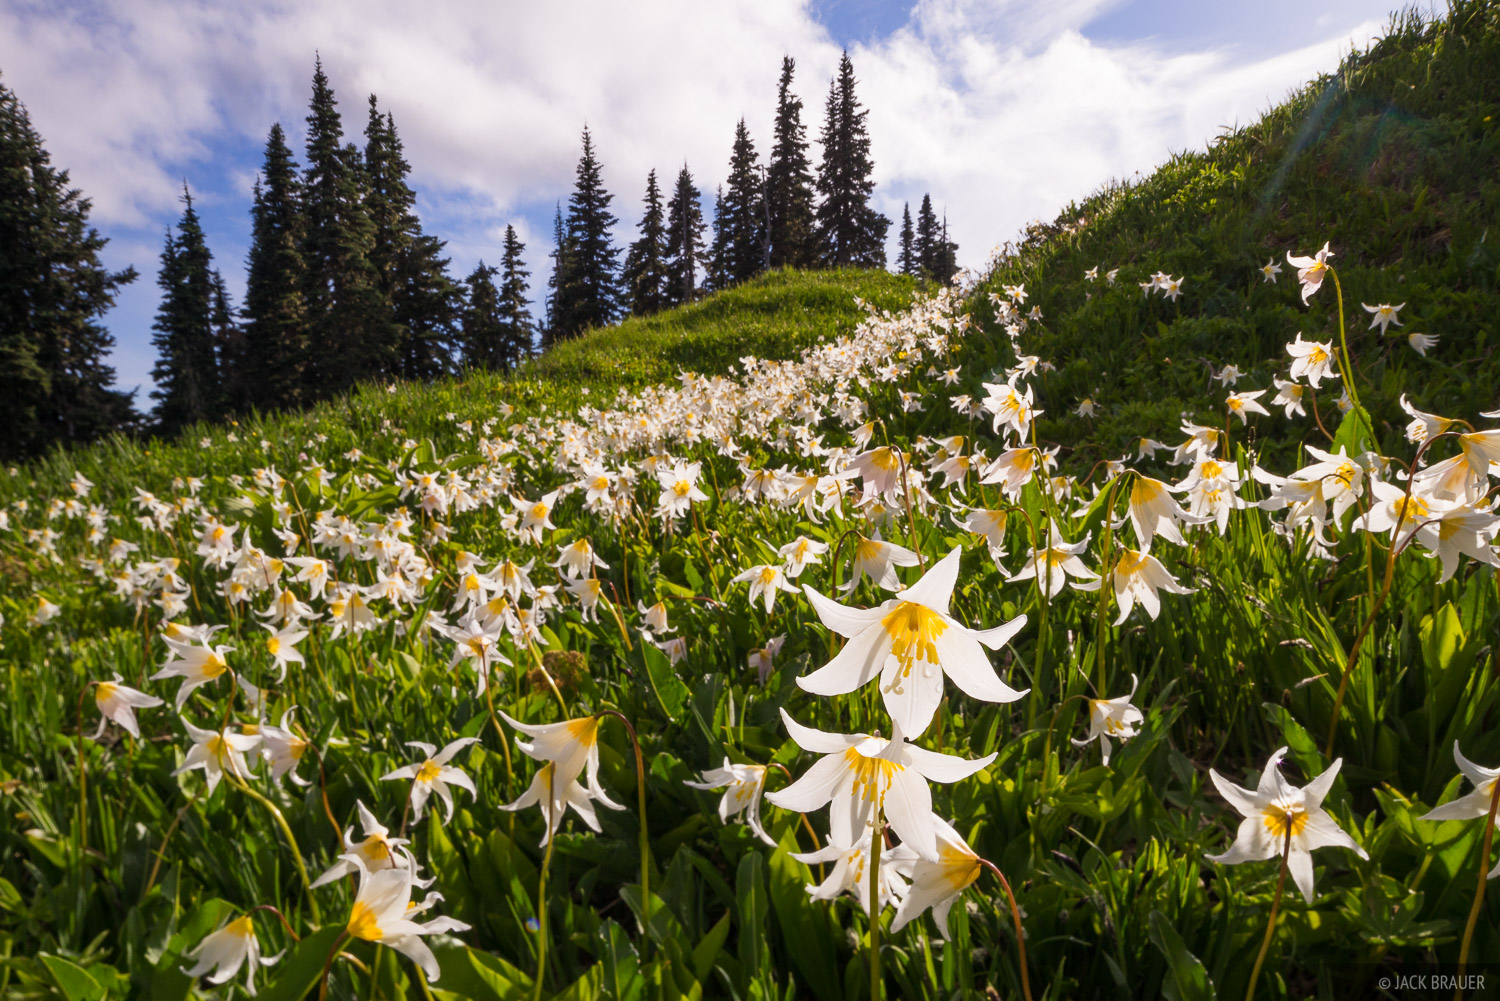 Olympic Peninsula, Sol Duc, Washington, wildflowers, Olympic National Park, avalanche lilies, July, 2016